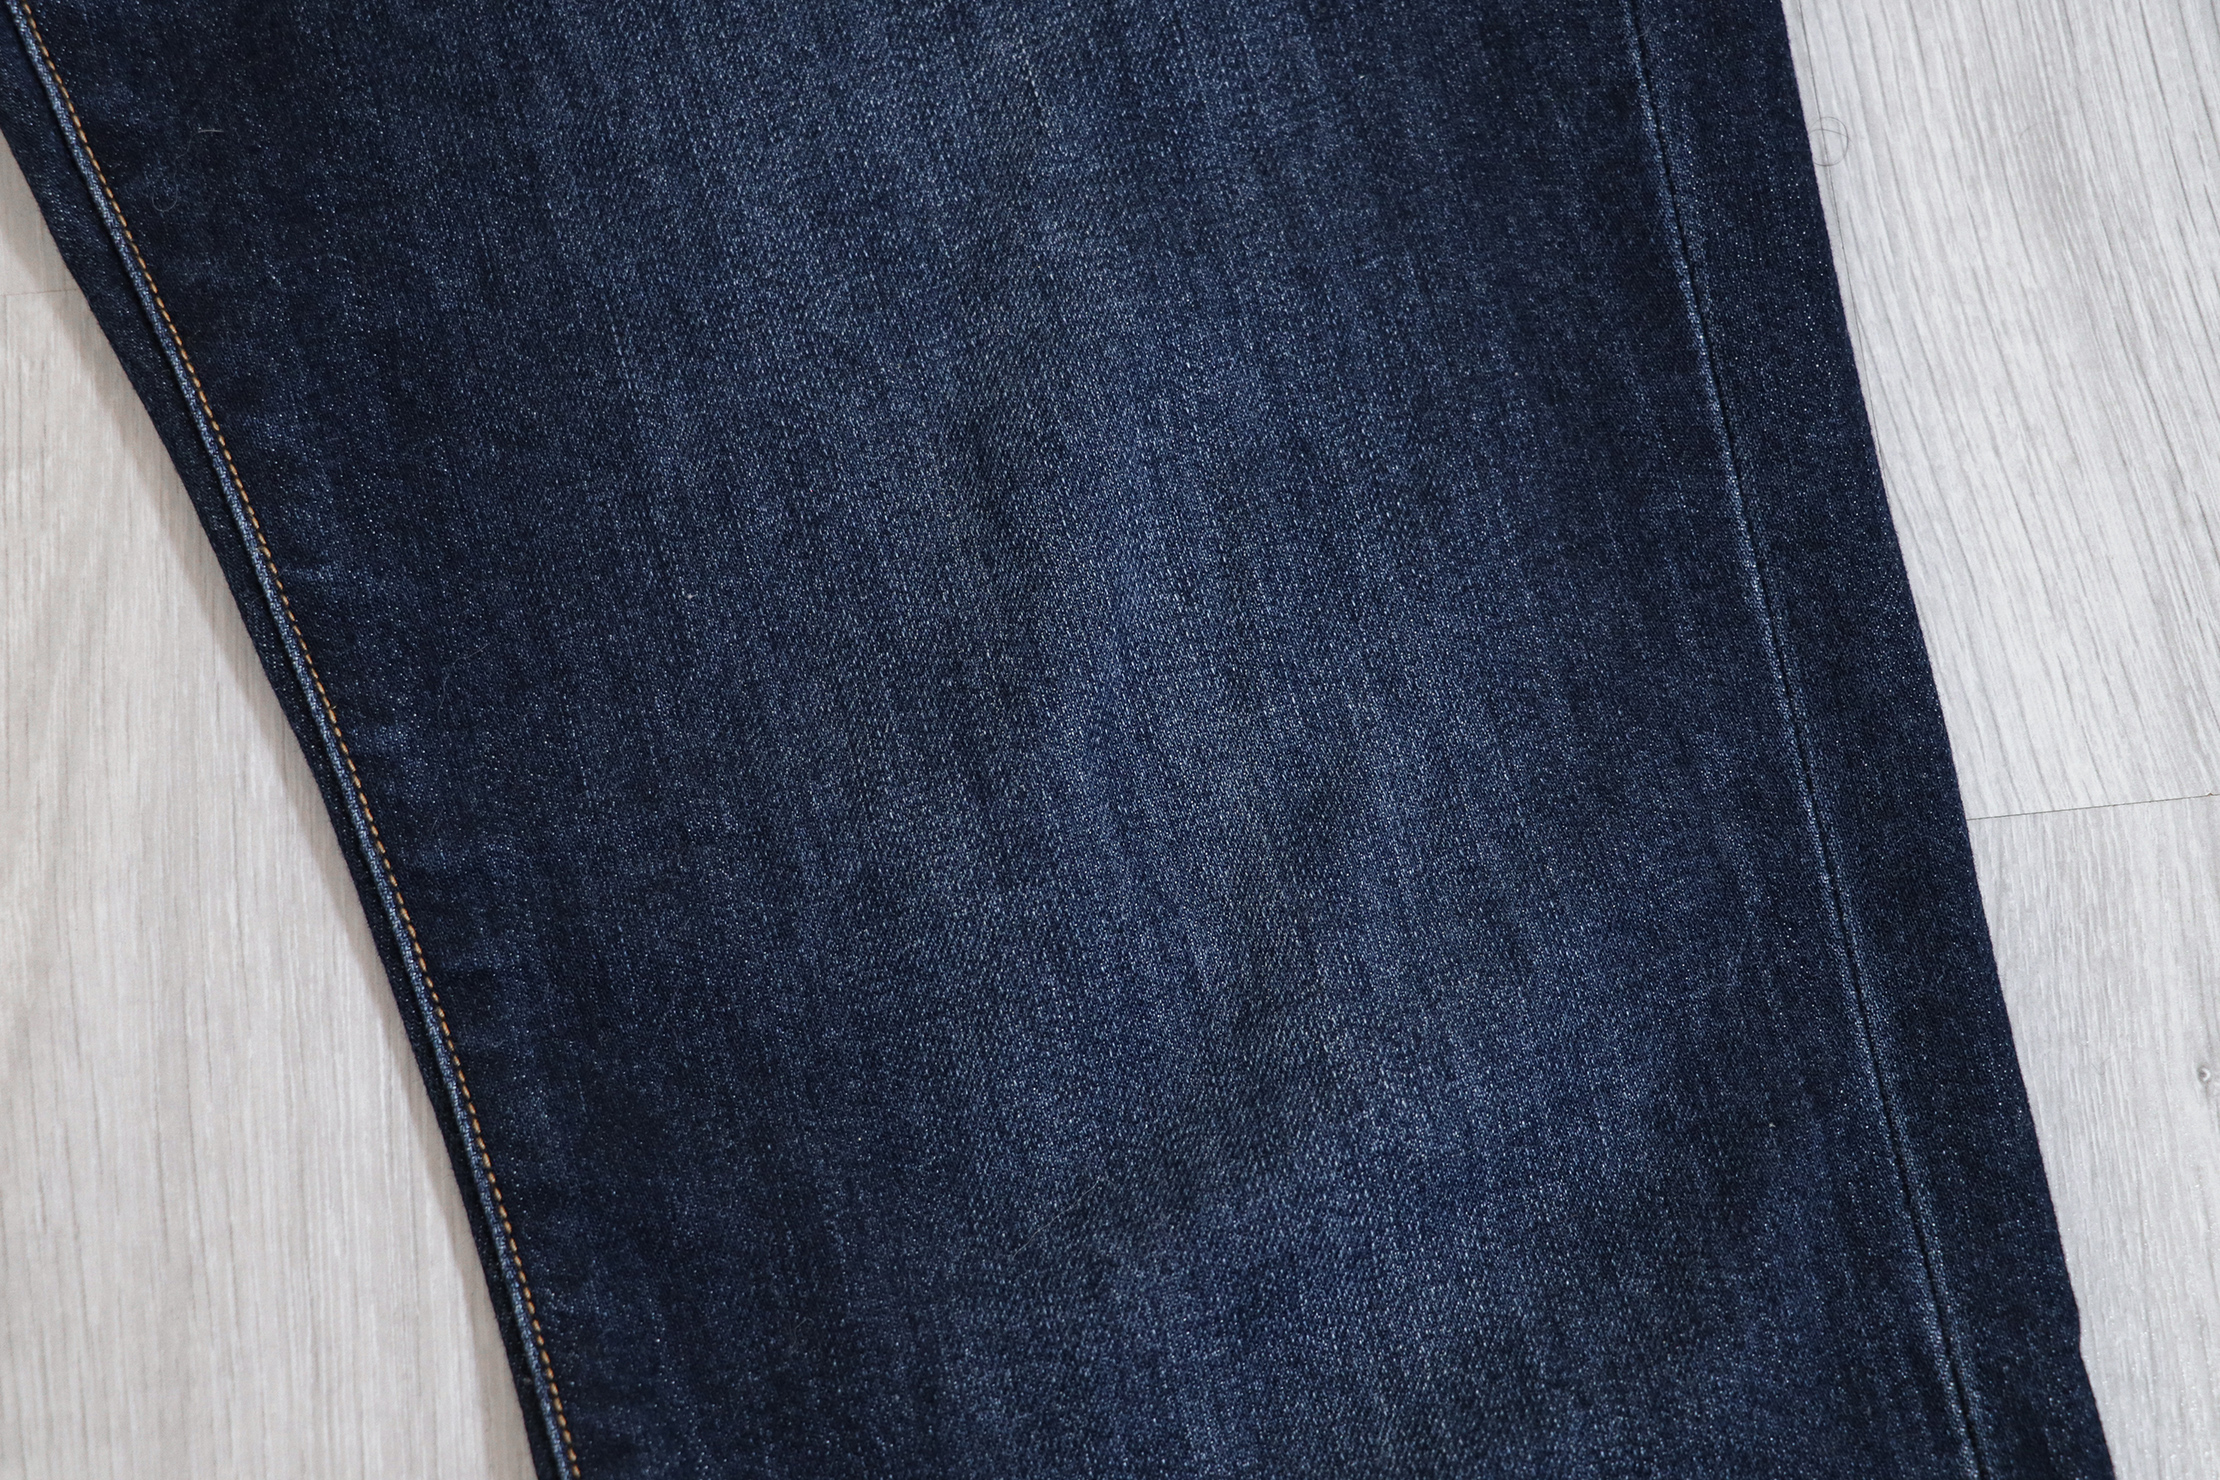 Bluffworks Departure Travel Jeans Color